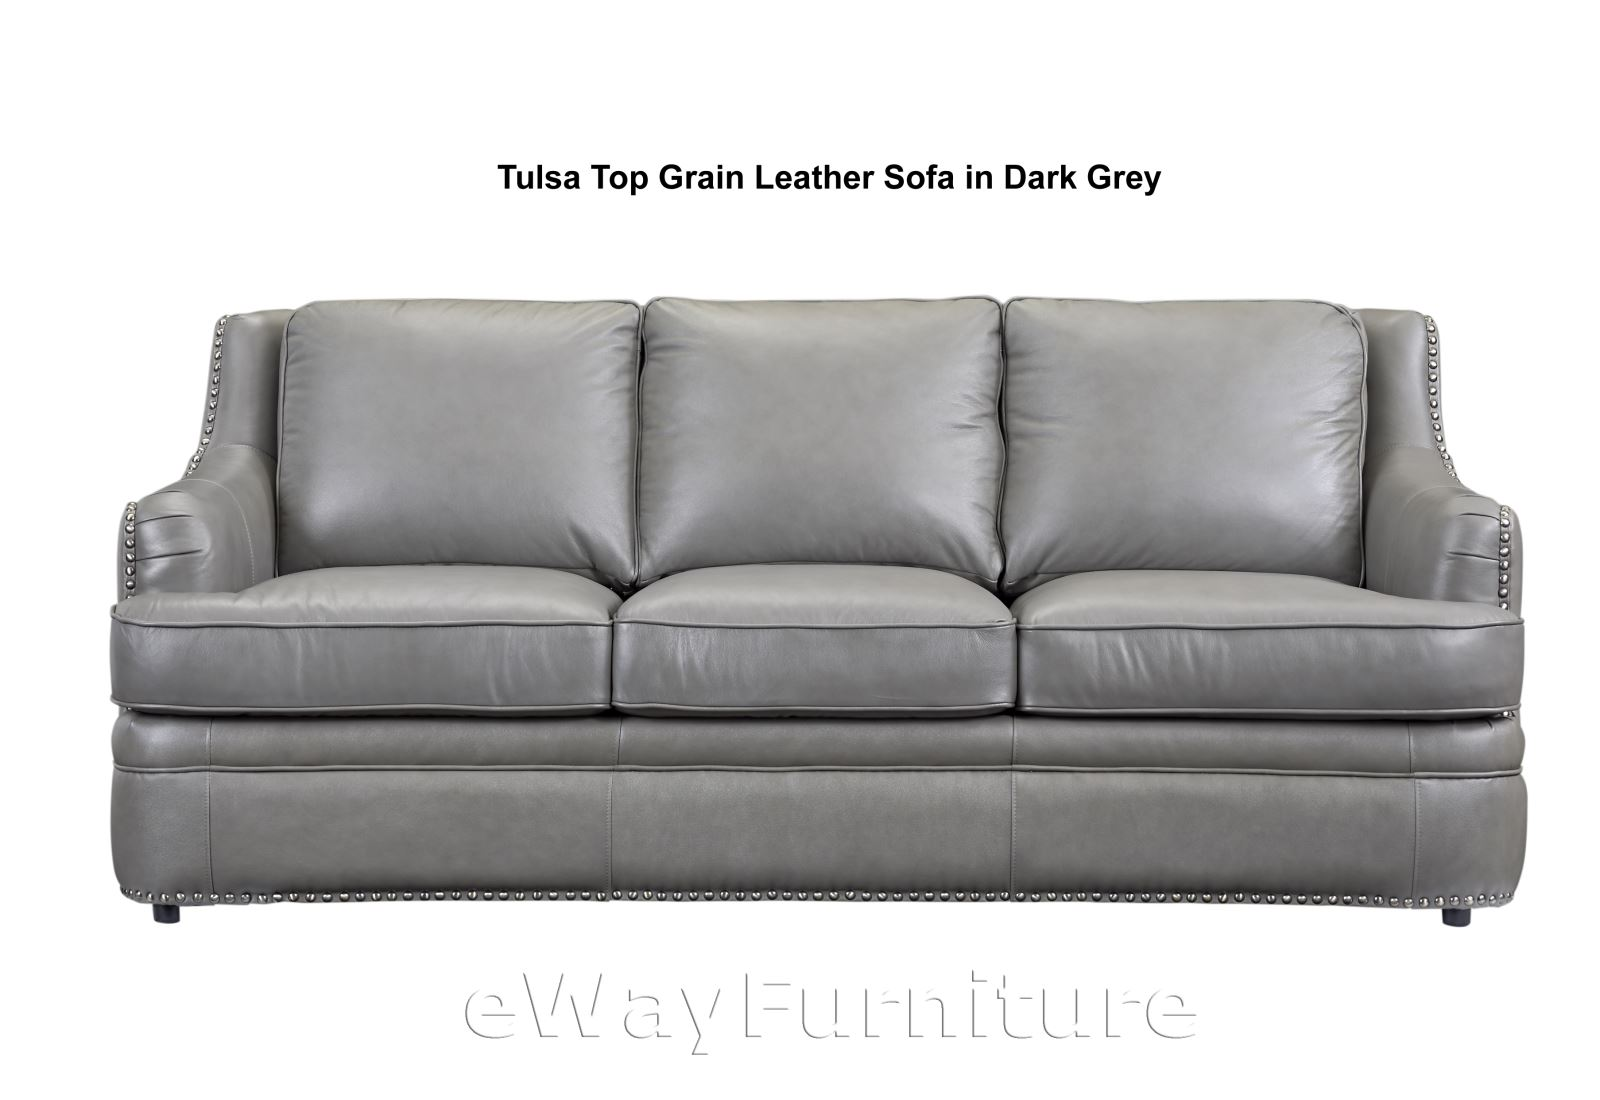 tulsa dark grey top grain leather sofa living room furniture online